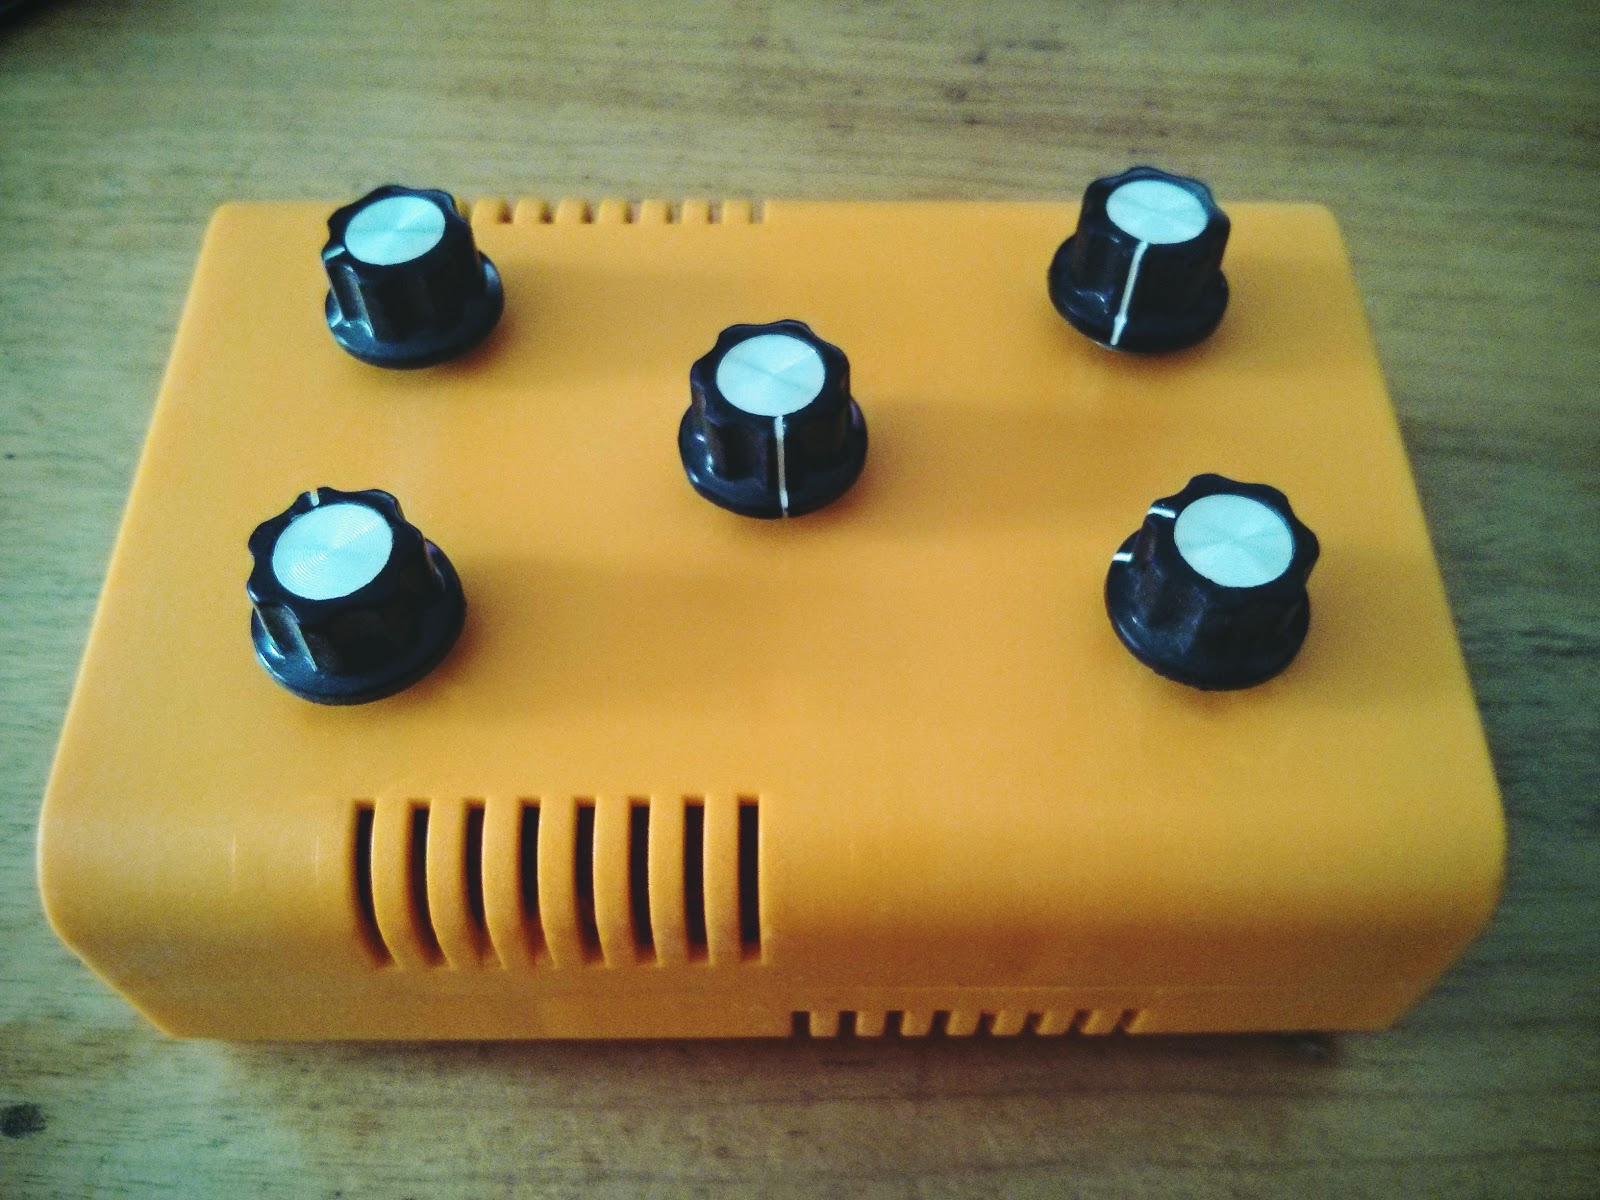 Blog Hoskins: My First Arduino Synth